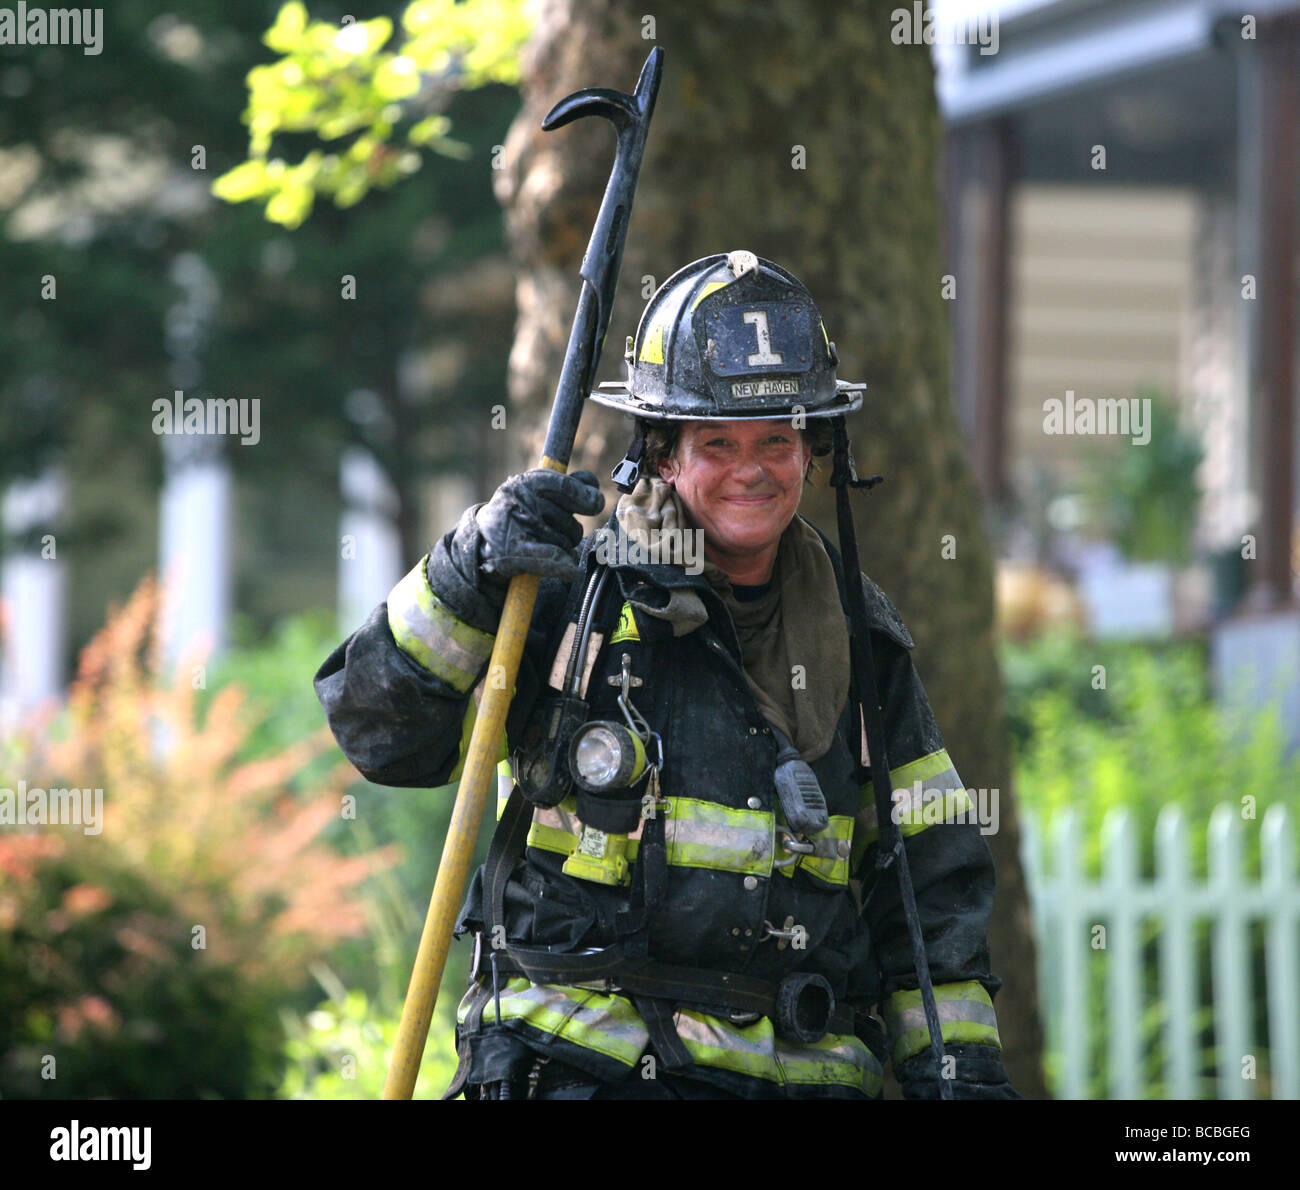 A female firefighter smiles with dirty face after battling a blaze in New Haven Connecticut USA - Stock Image